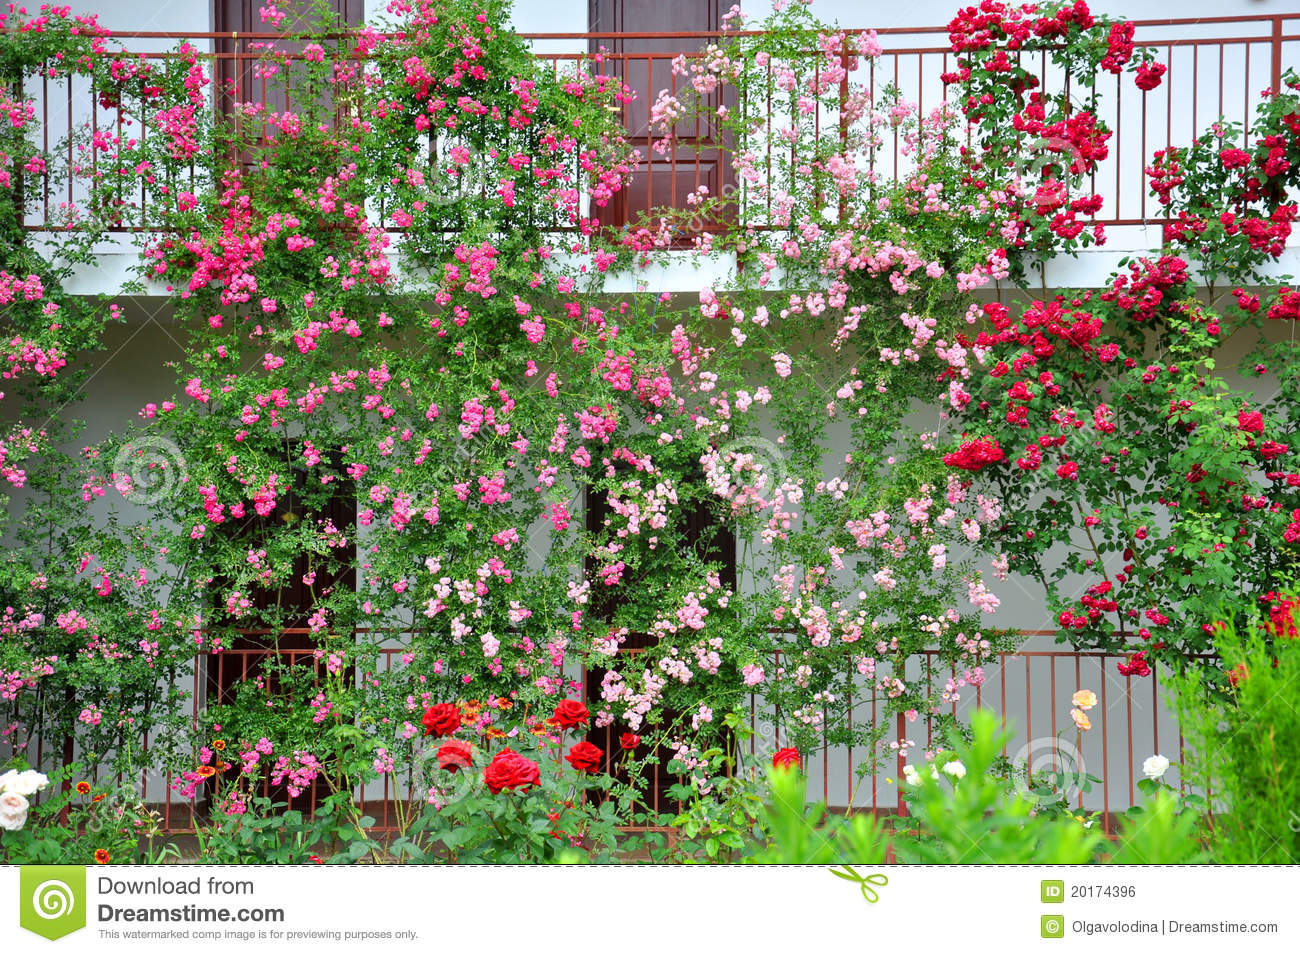 A beautiful flower garden of roses stock photo image of farm download a beautiful flower garden of roses stock photo image of farm landscape izmirmasajfo